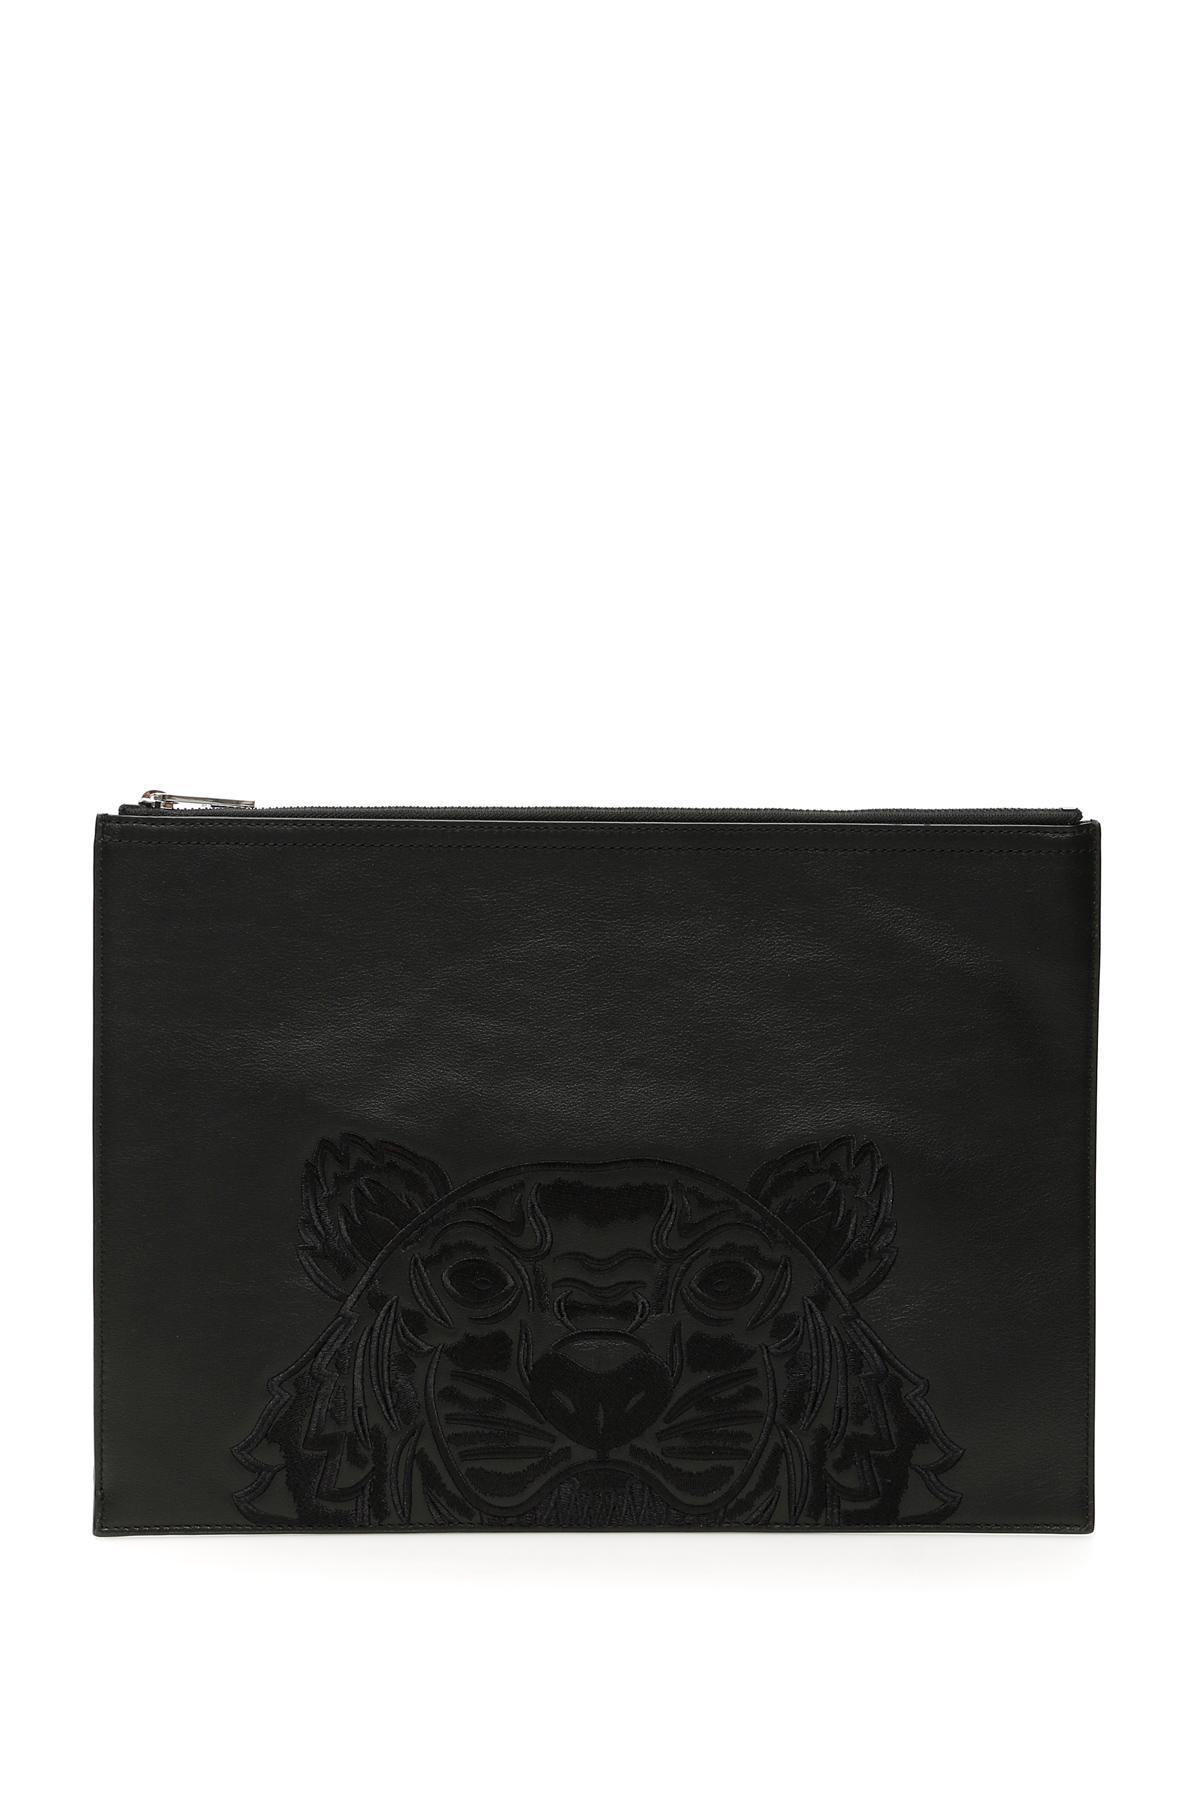 sito affidabile c5349 21132 Buy Latest Clutches at Best Price Online in Philippines ...